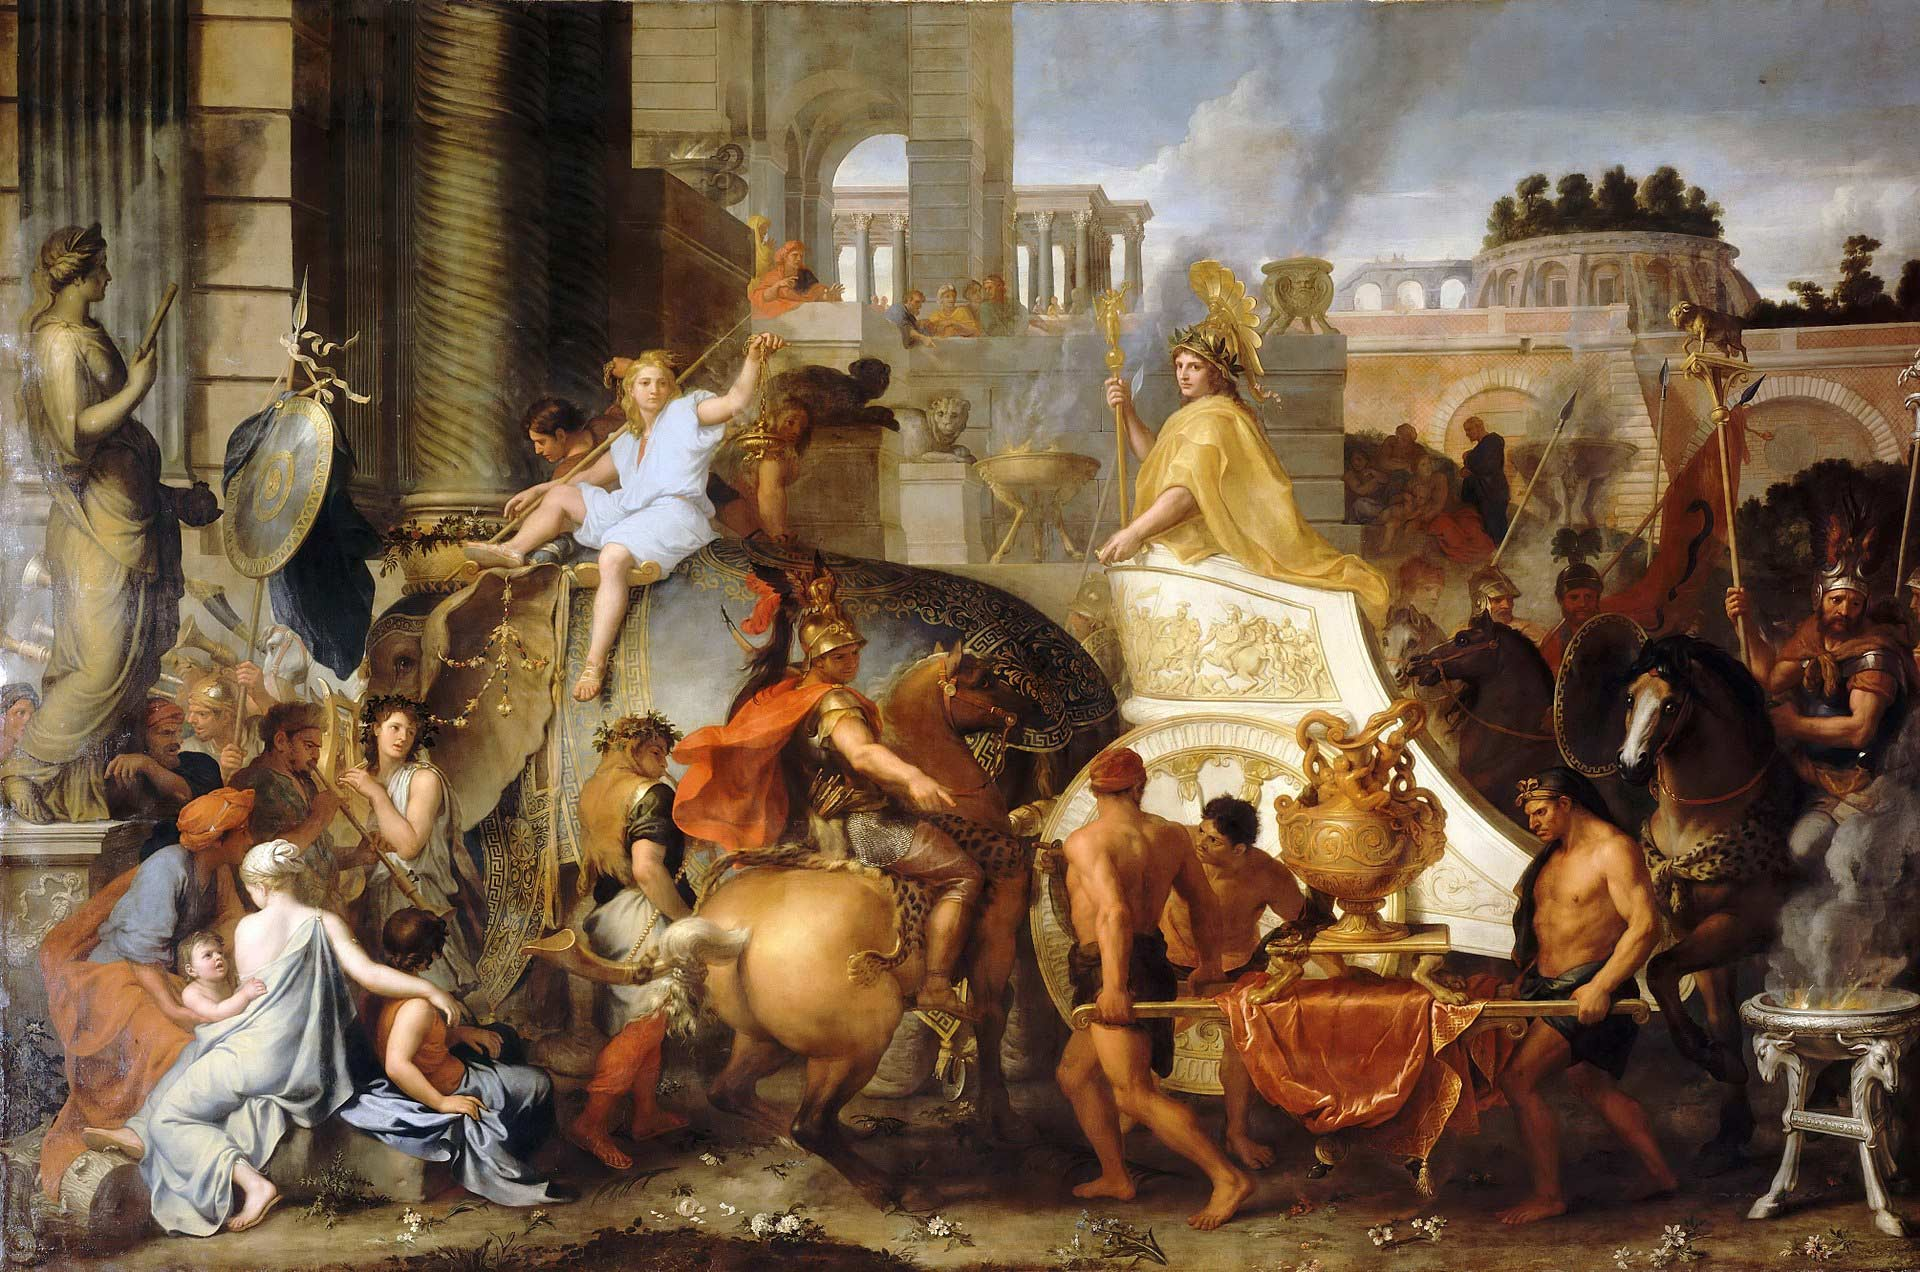 1665 Painting by Charles LeBrun